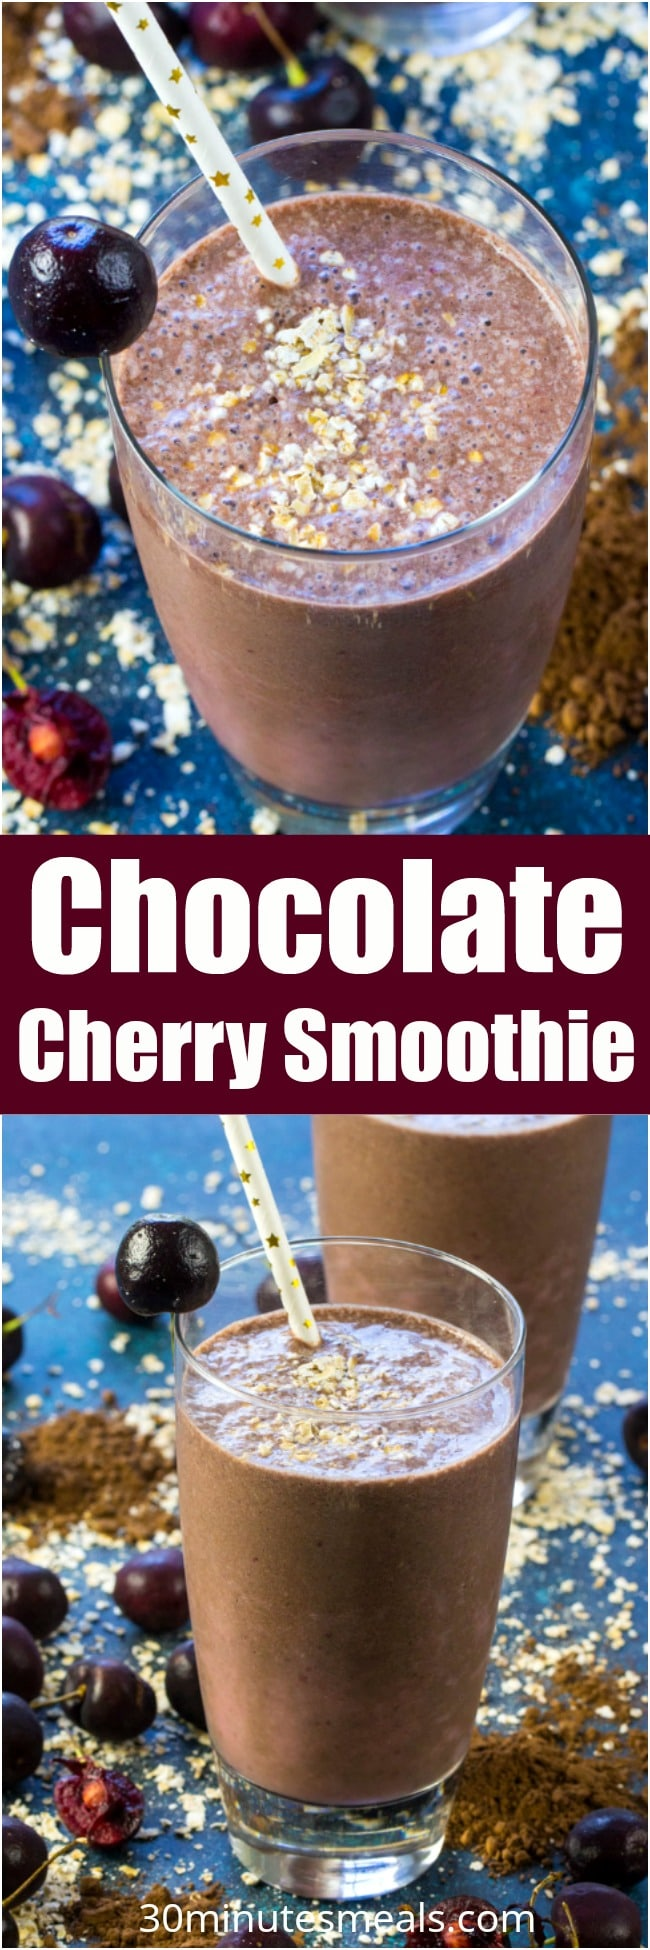 Chocolate Cherry Smoothie is a delicious combo of sweet, tart, creamy and chocolaty in a healthy drink that tastes like an indulgent dessert. Vegan and gluten free, extra filling with oats blended in.